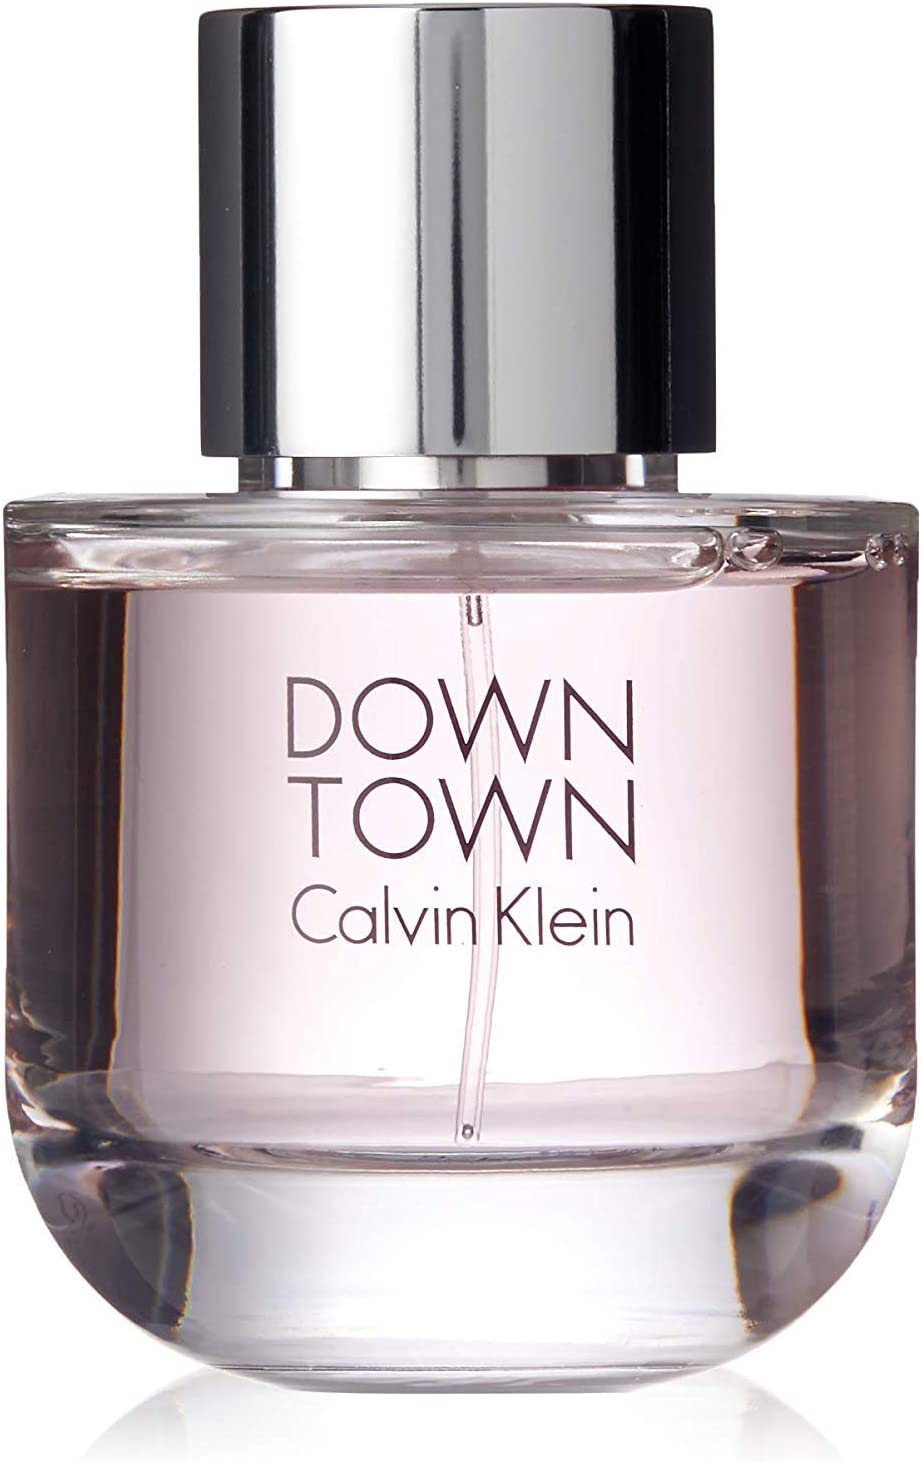 Calvin Klein Downtown Agua de Perfume Vaporizador - 90 ml: Amazon.es: Belleza